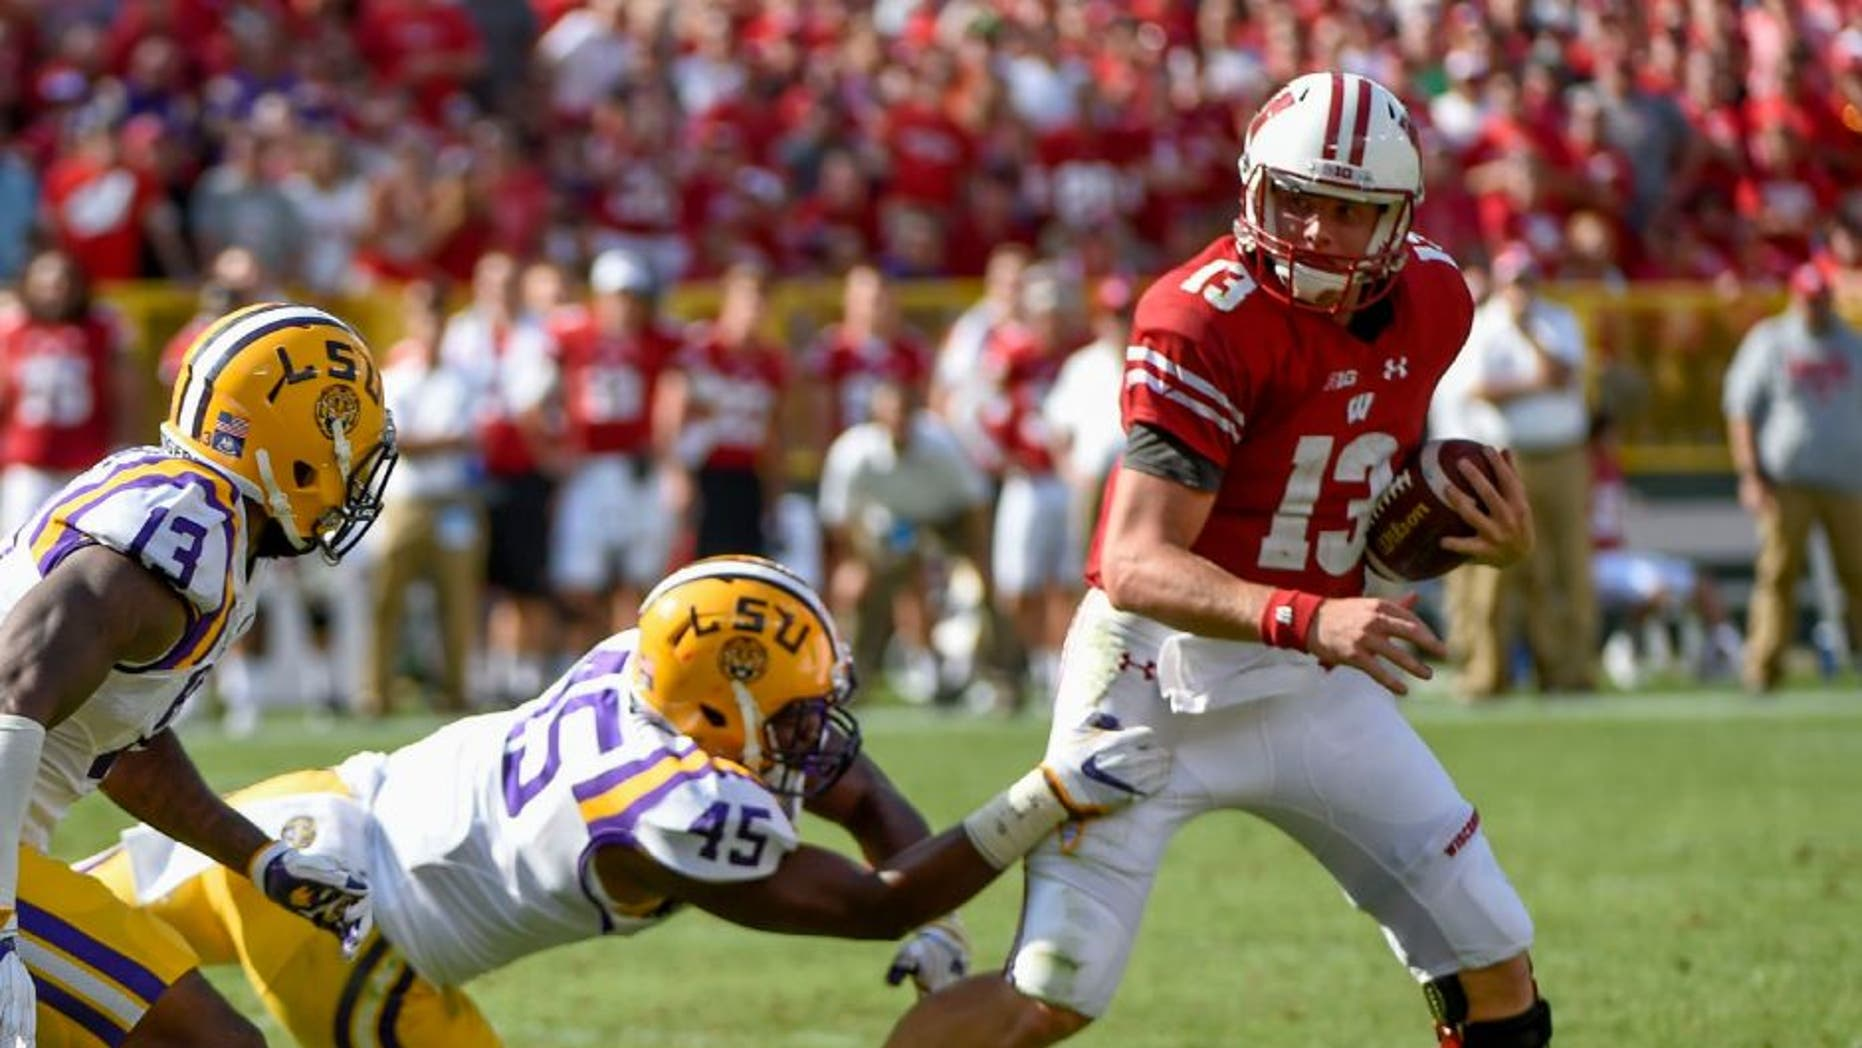 Wisconsin Badgers quarterback Bart Houston (right) tries to break a tackle by LSU Tigers linebacker Michael Divinity Jr., left in the 2nd quarter at Lambeau Field.